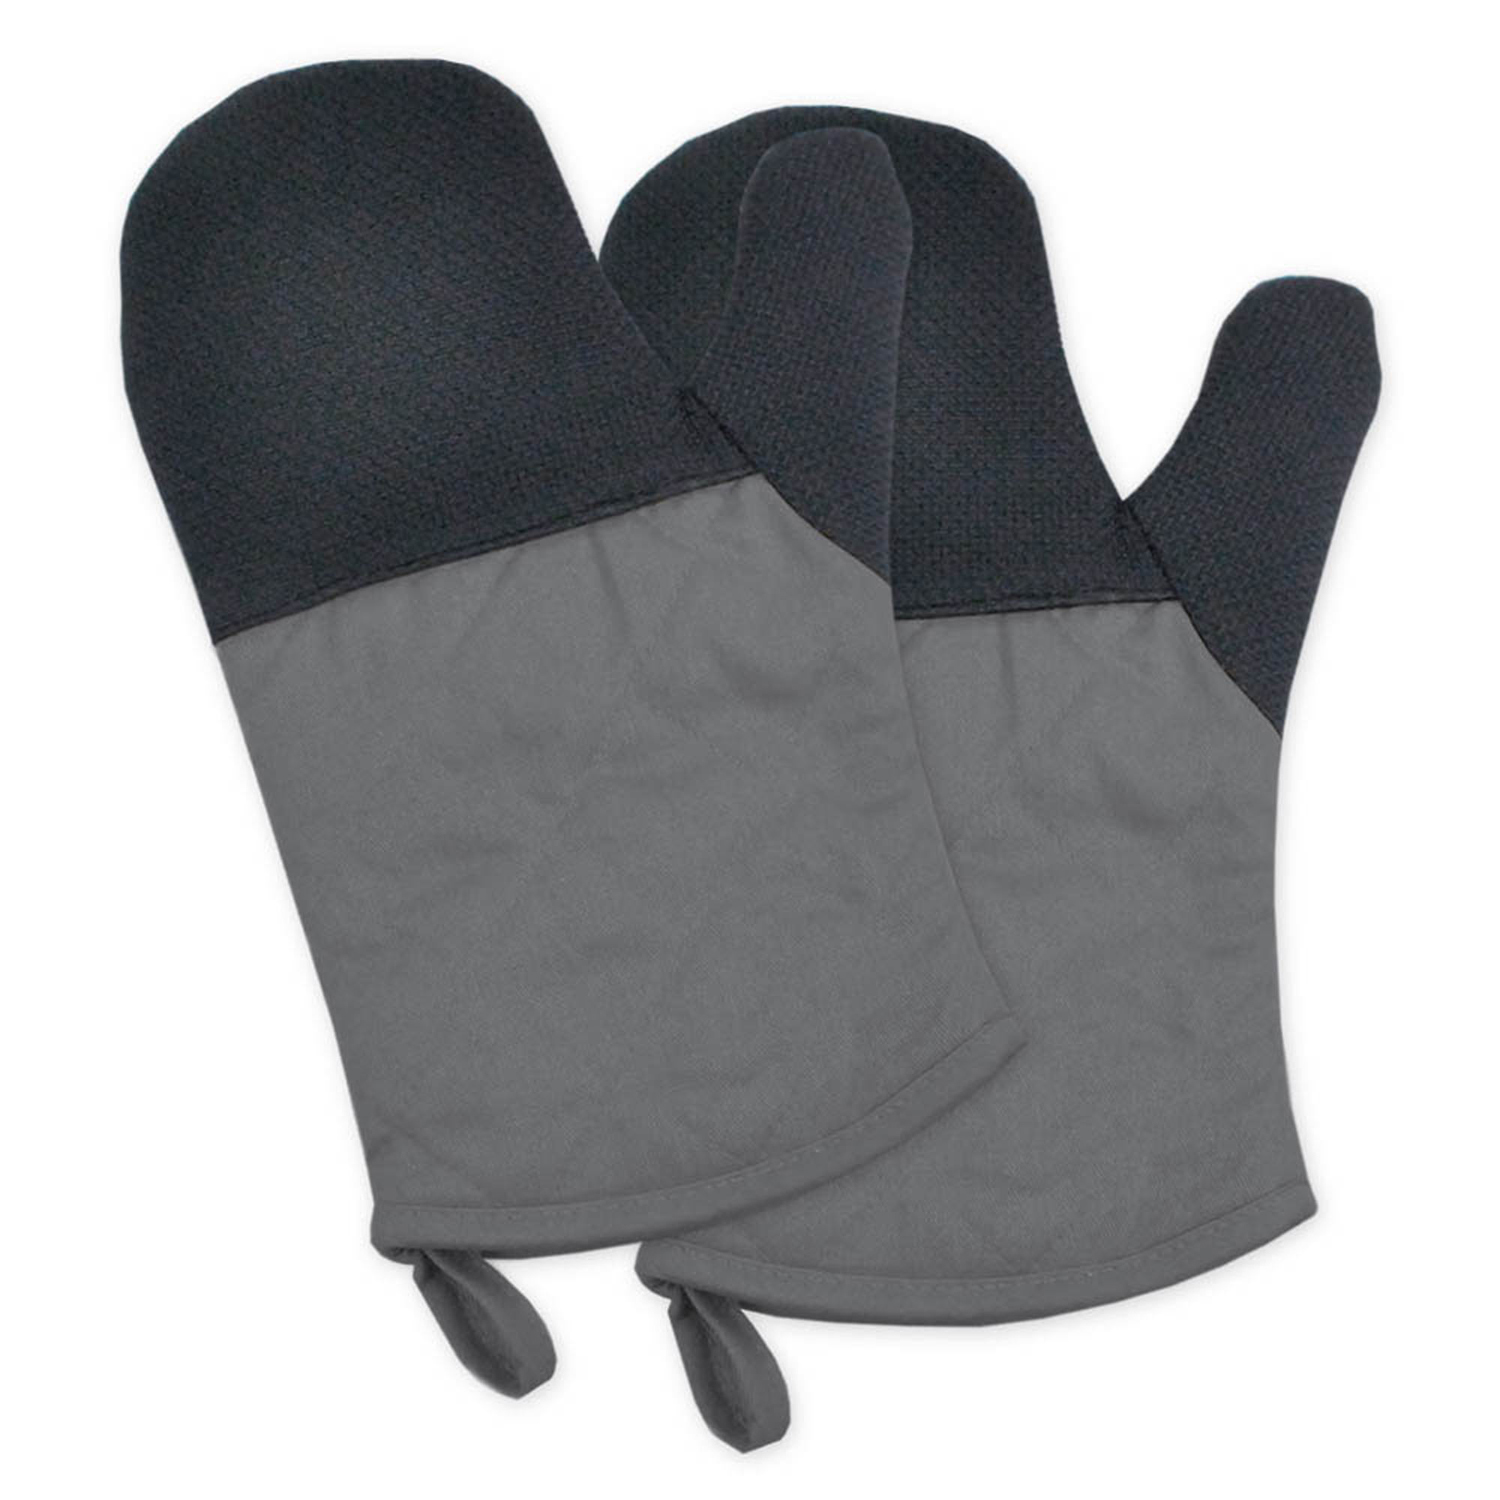 Two-Toned Gray Heat Resistant Oven Mitt Set of 2